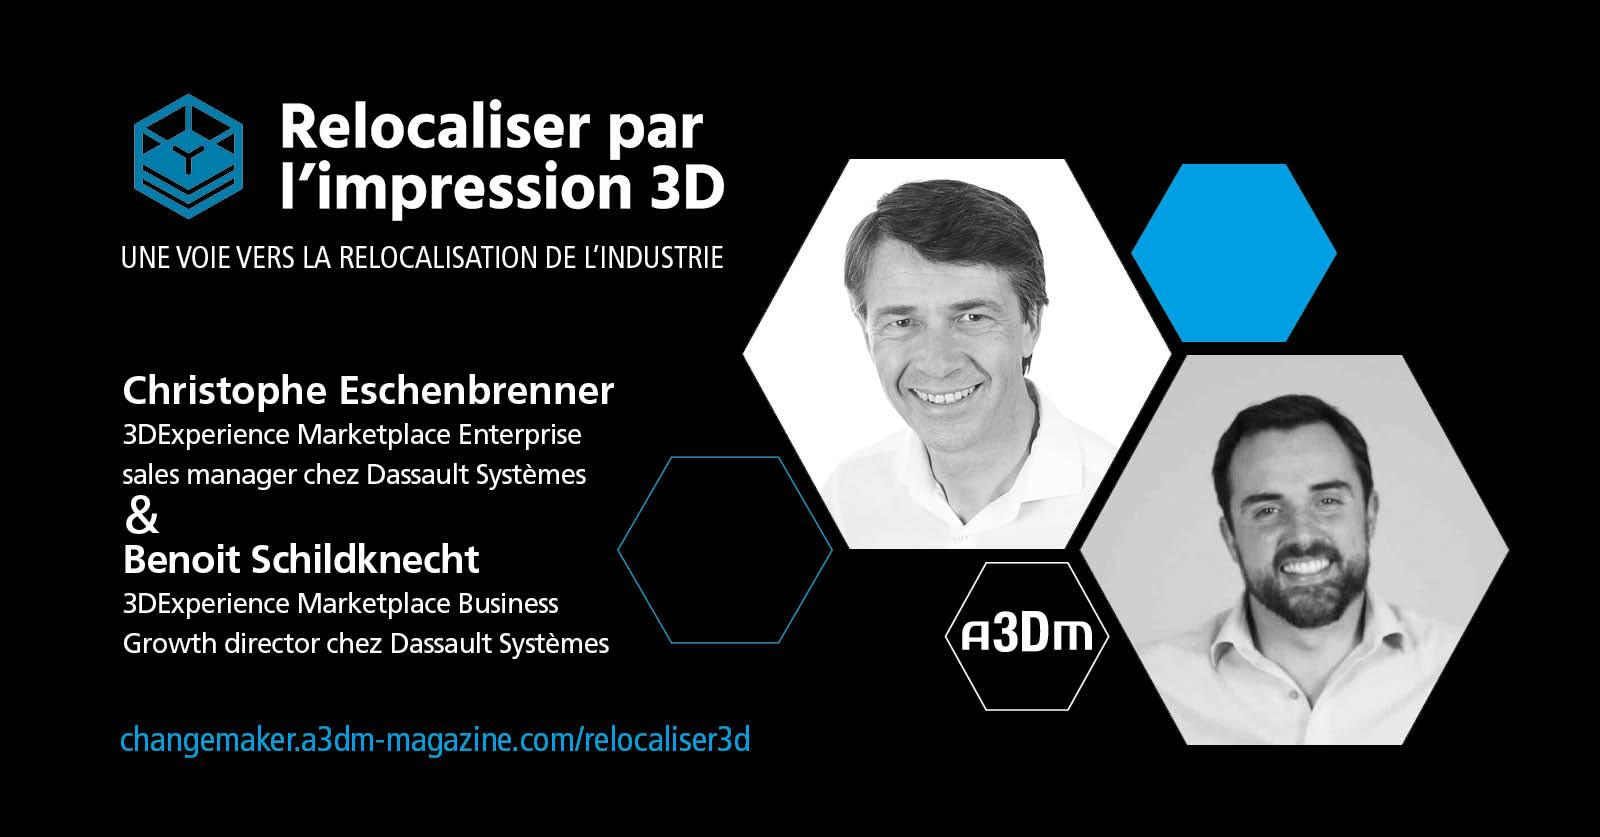 dassault_systemes_impression_3D_relocalisation